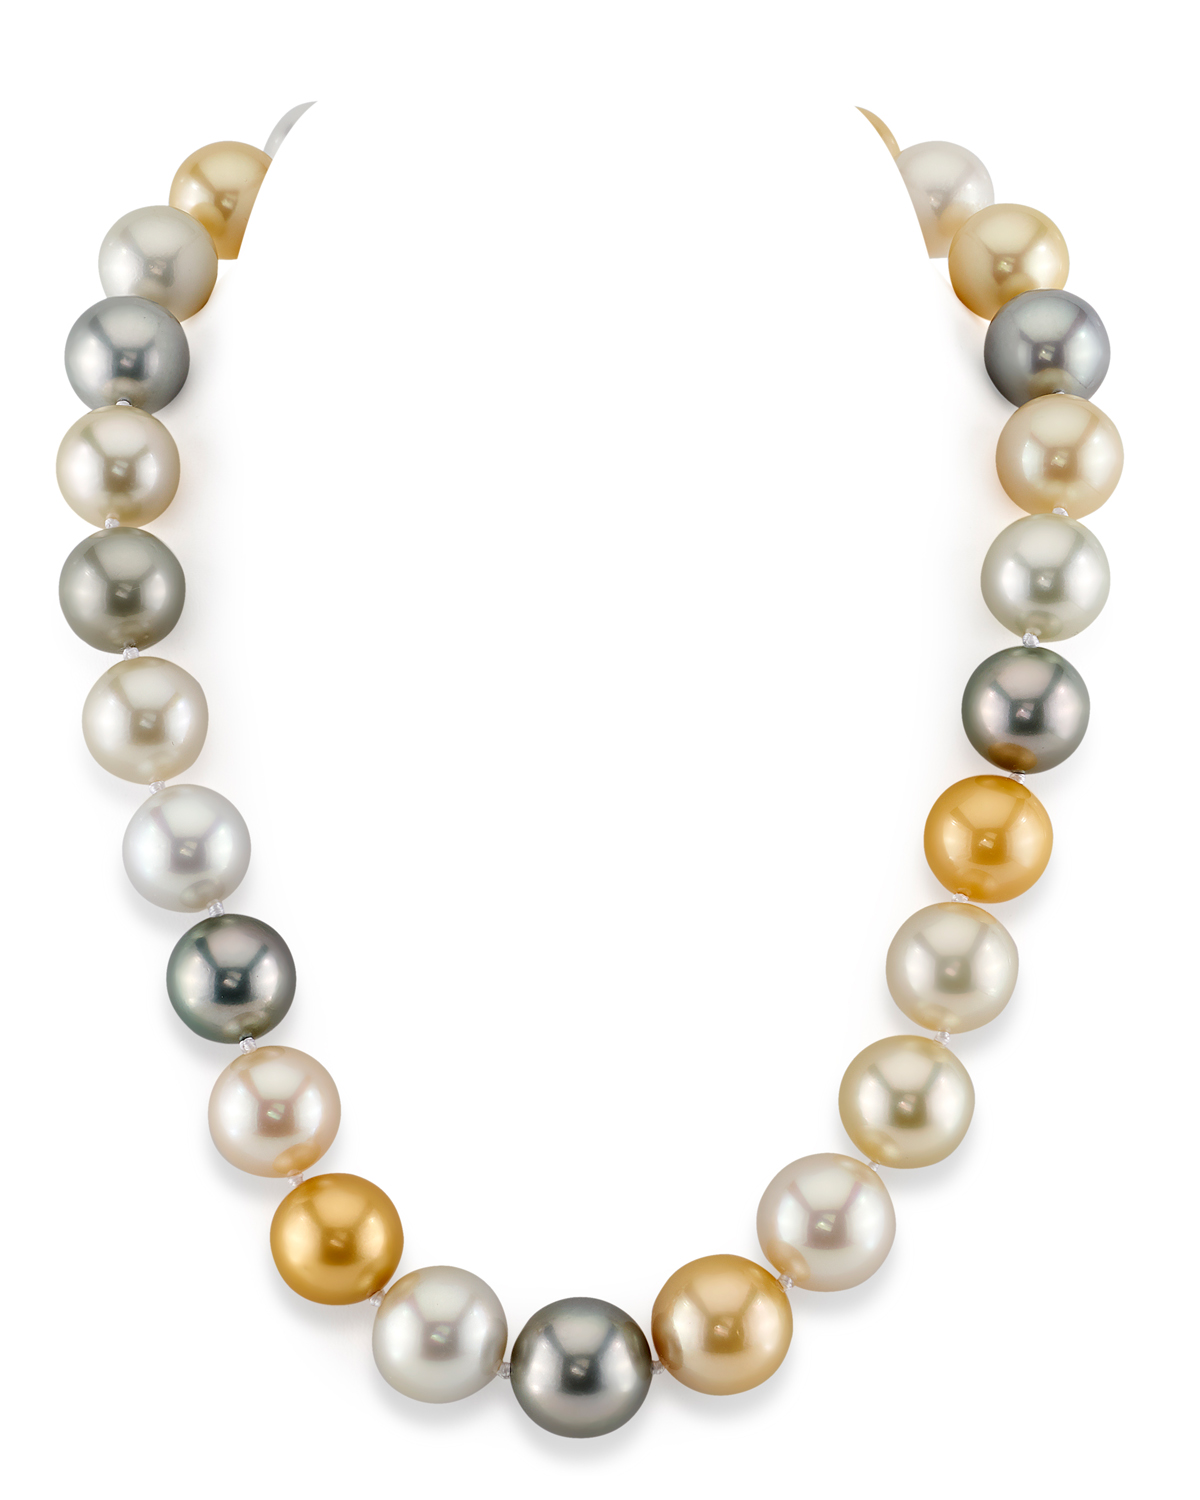 14-16mm South Sea Multicolor Pearl Necklace - AAAA Quality